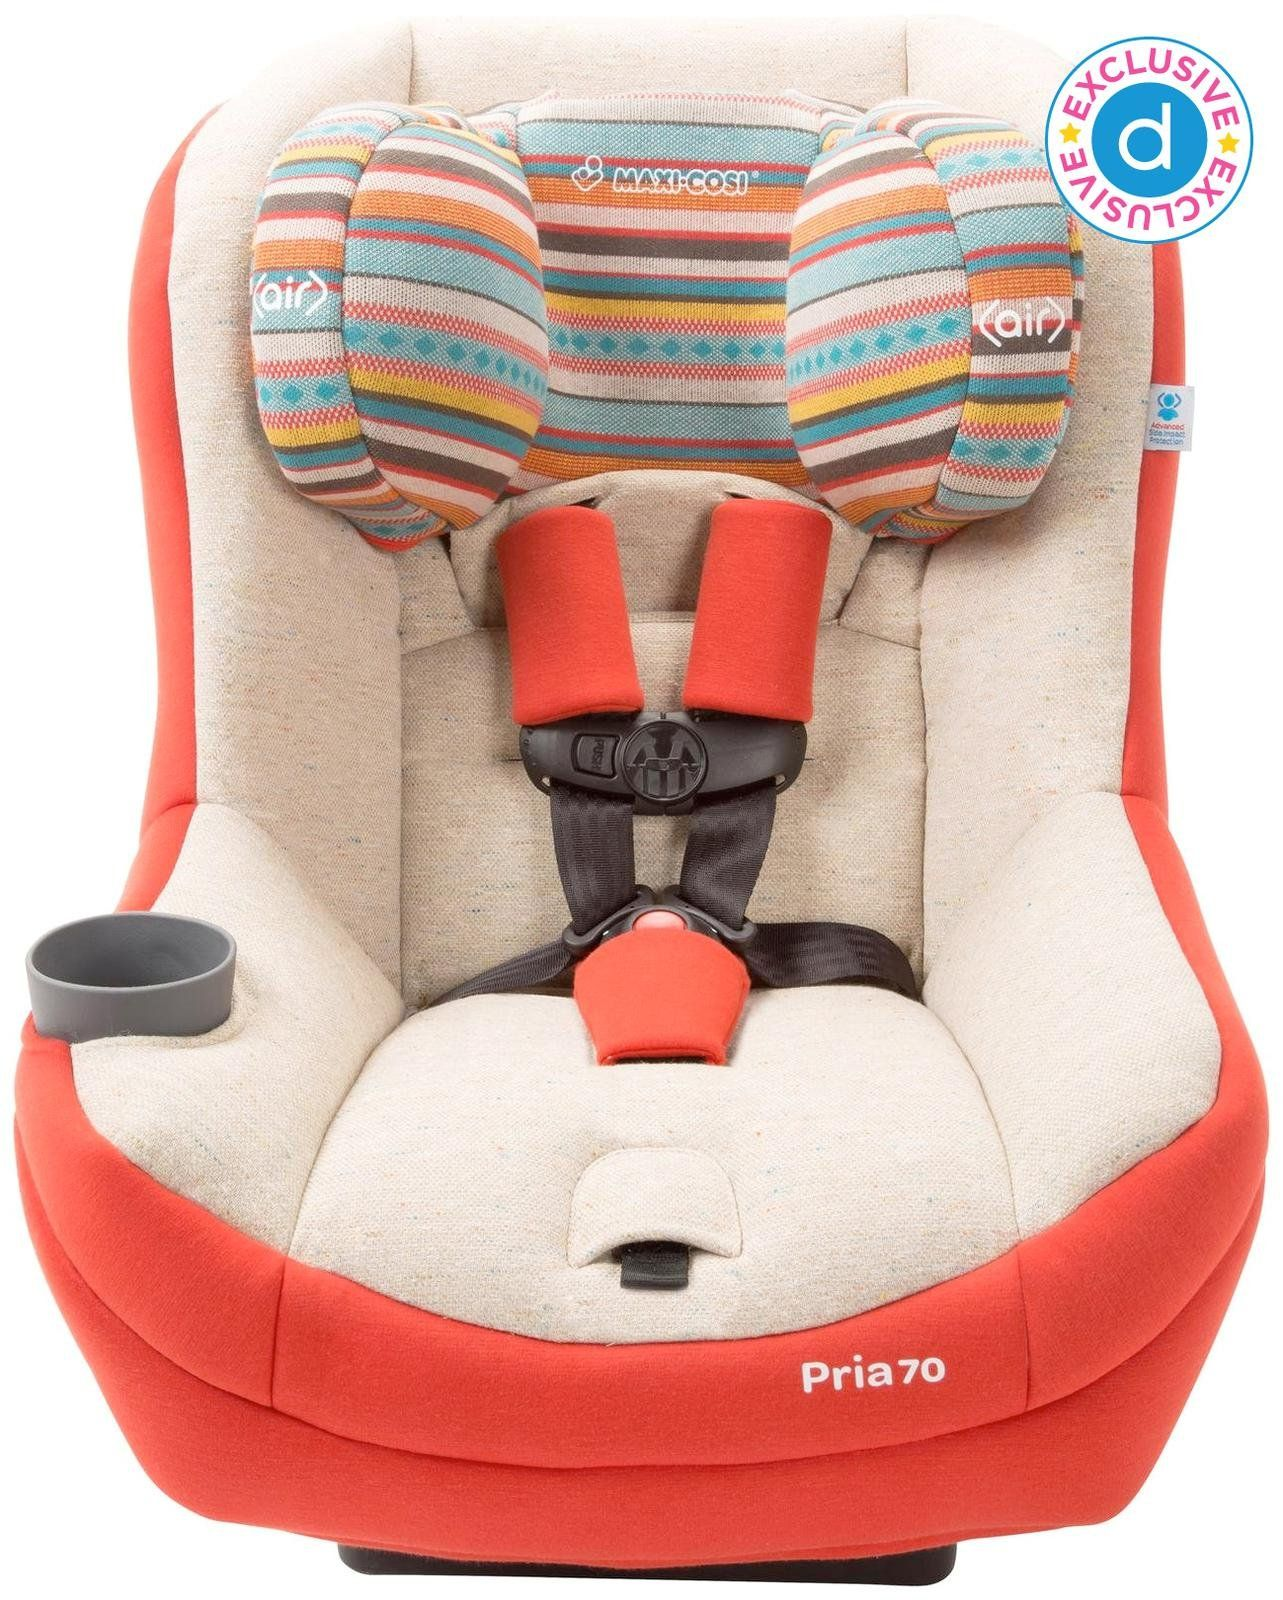 Maxi CosiR PriaTM Convertible Car Seat Baby Toddler Available At